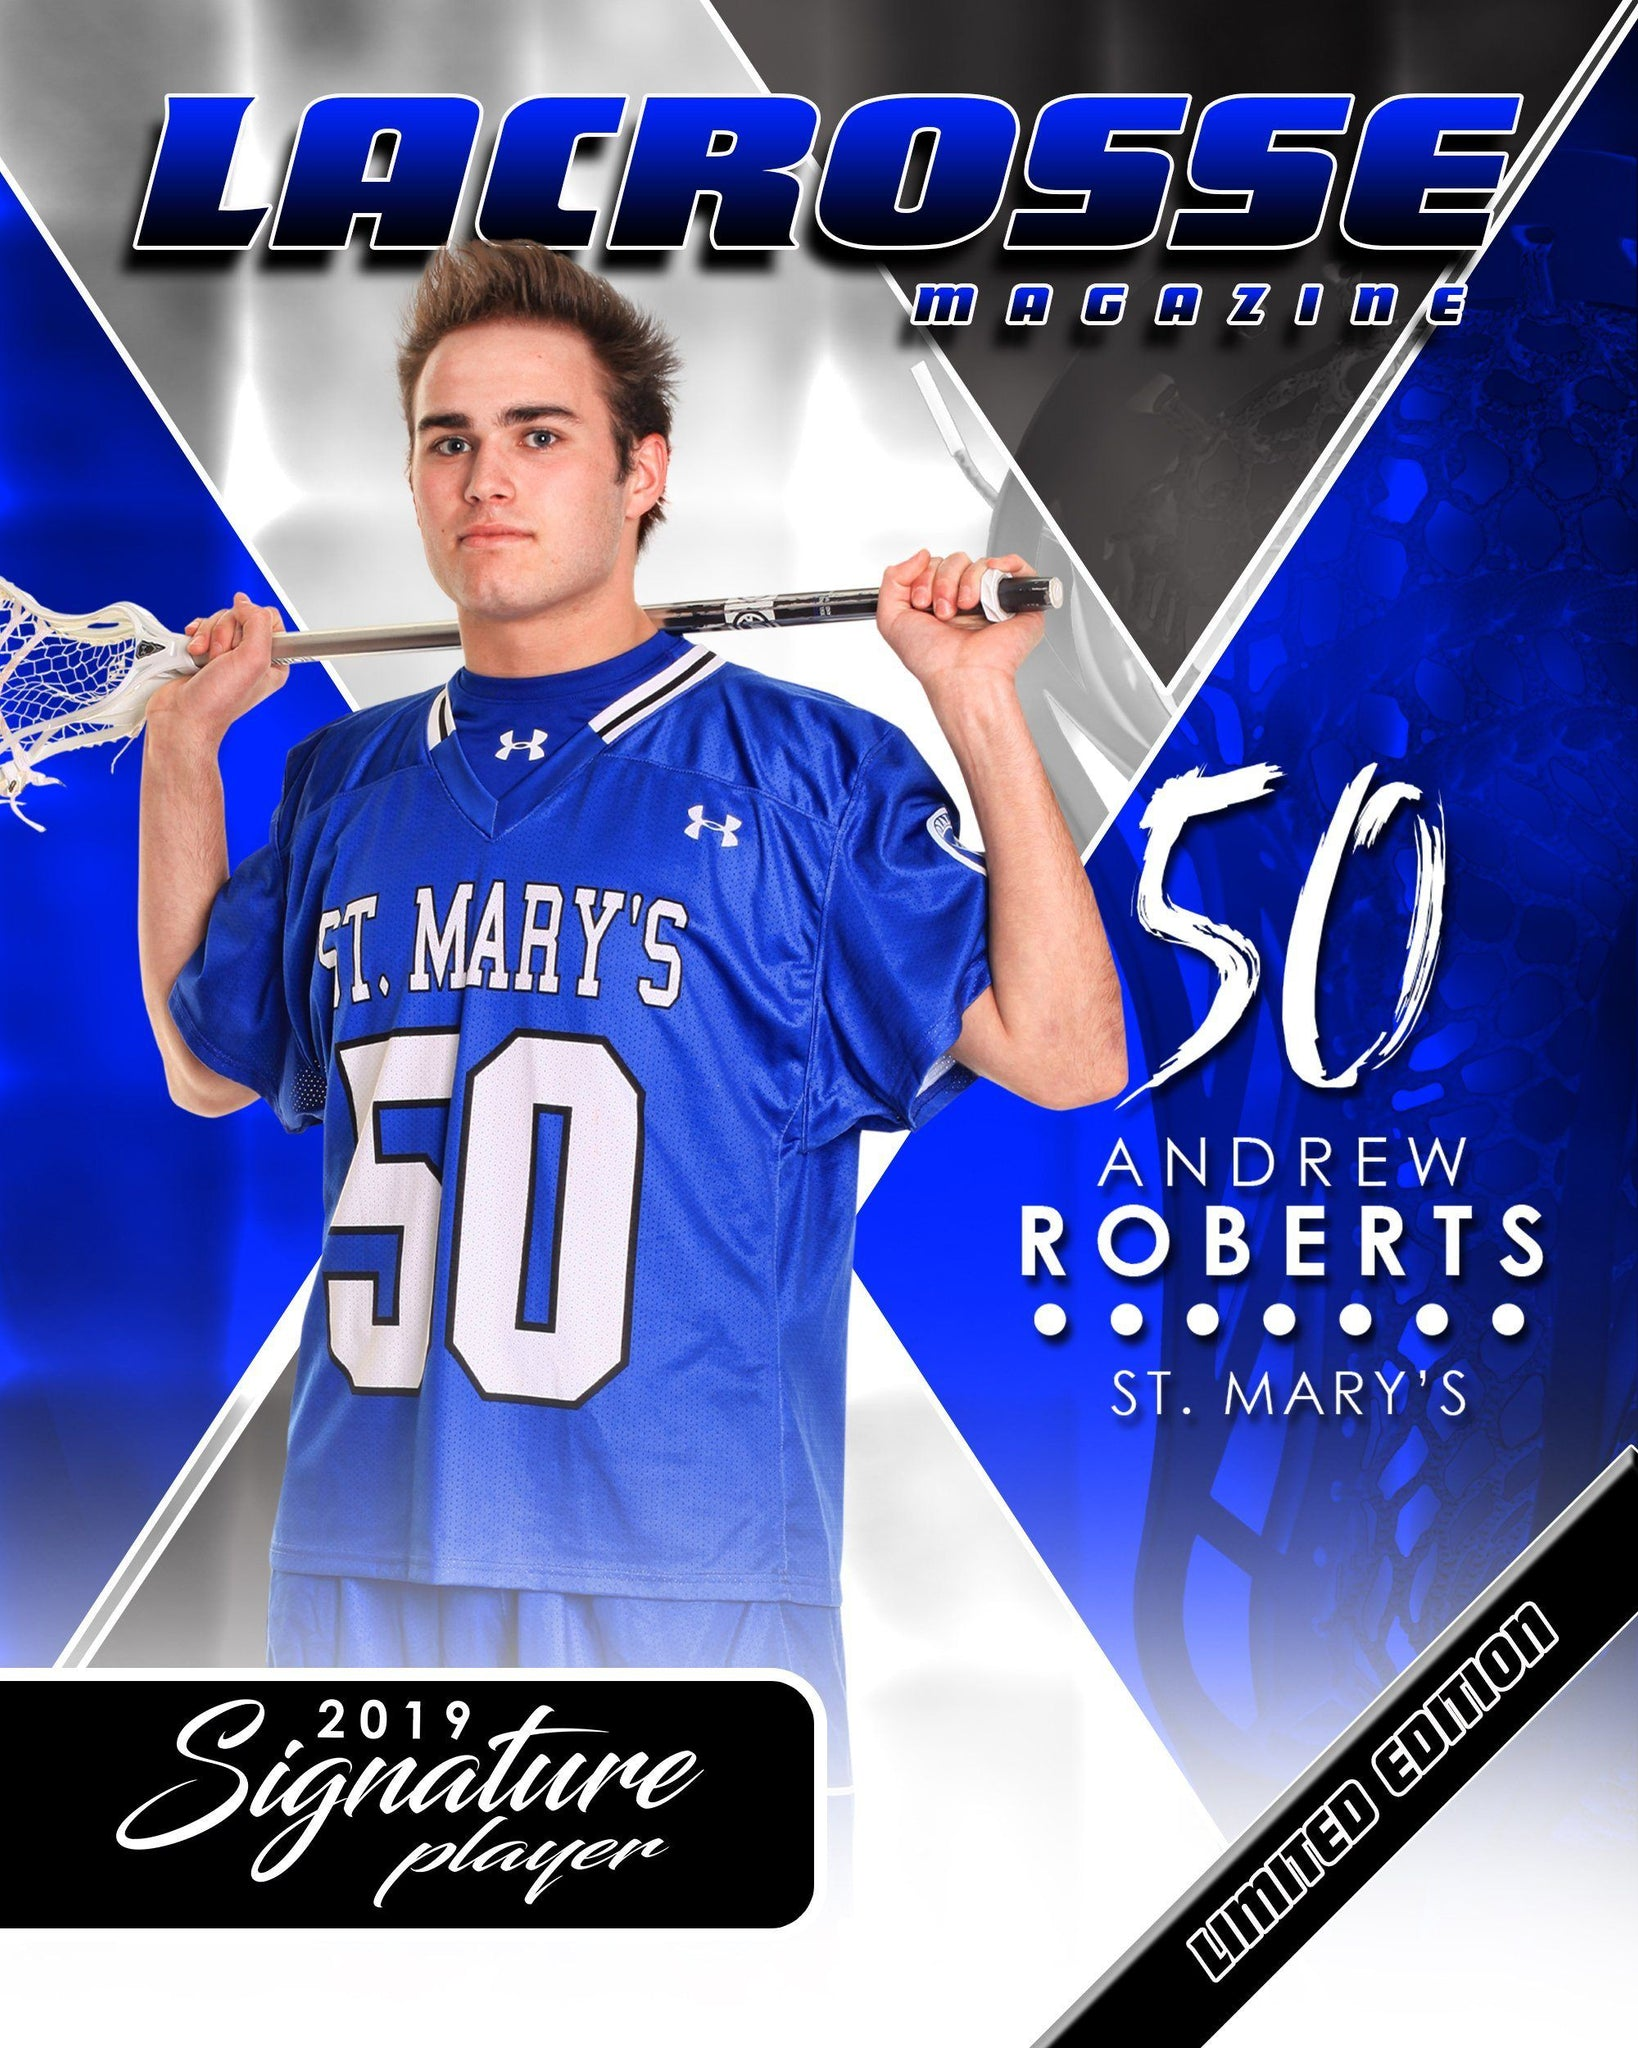 Signature Player - Lacrosse - V2 - Extraction Magazine Cover Template-Photoshop Template - Photo Solutions